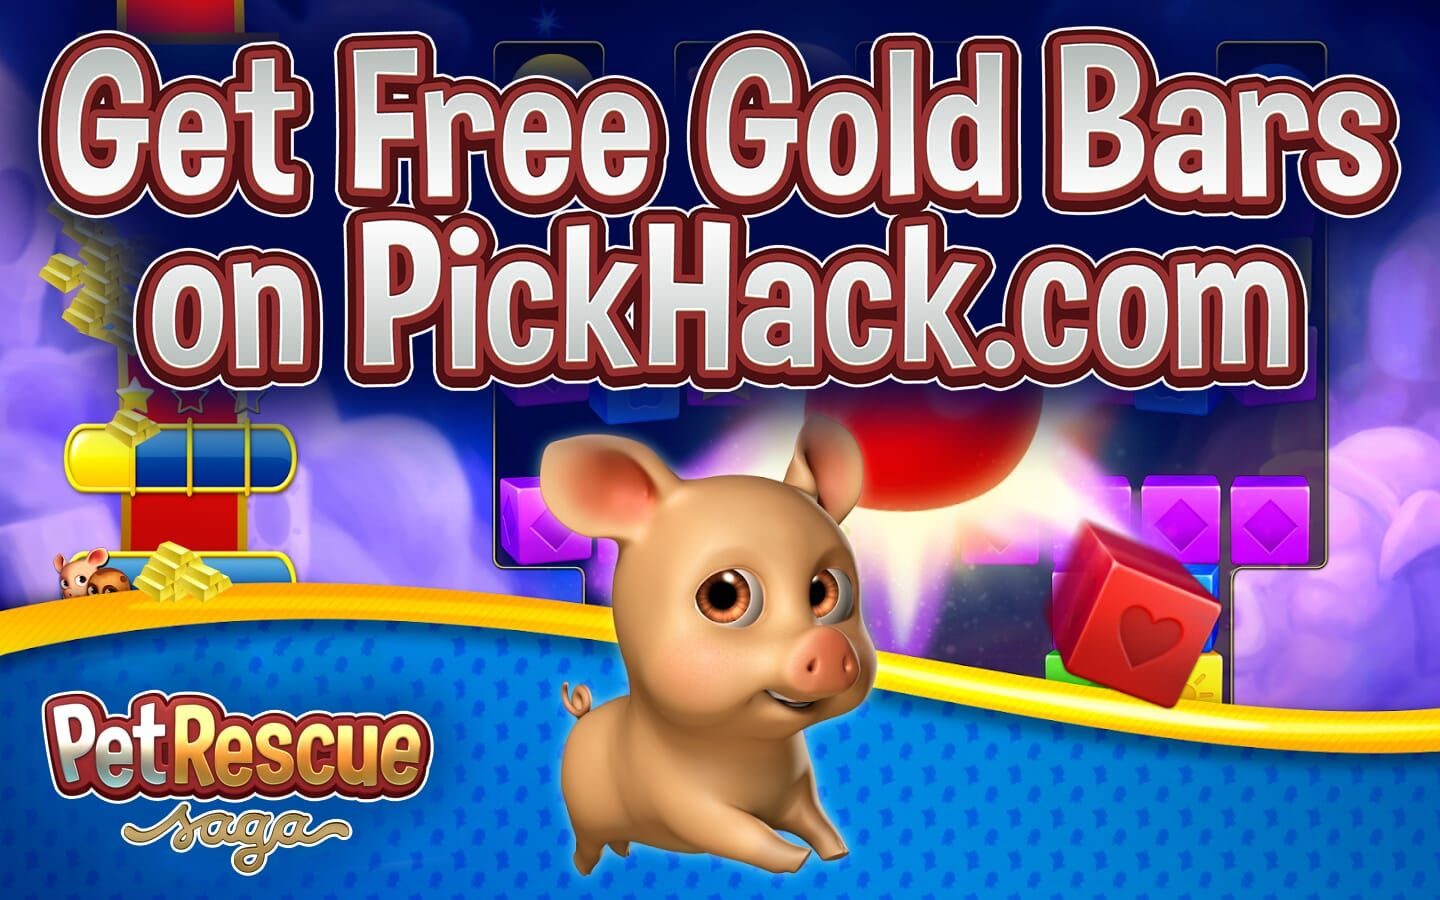 Lets Go To Pet Rescue Saga Generator Site New Pet Rescue Saga Hack Online Real Works Add Up To 999 Amount Of Gold Bars For Free This Method 100 Works Safe